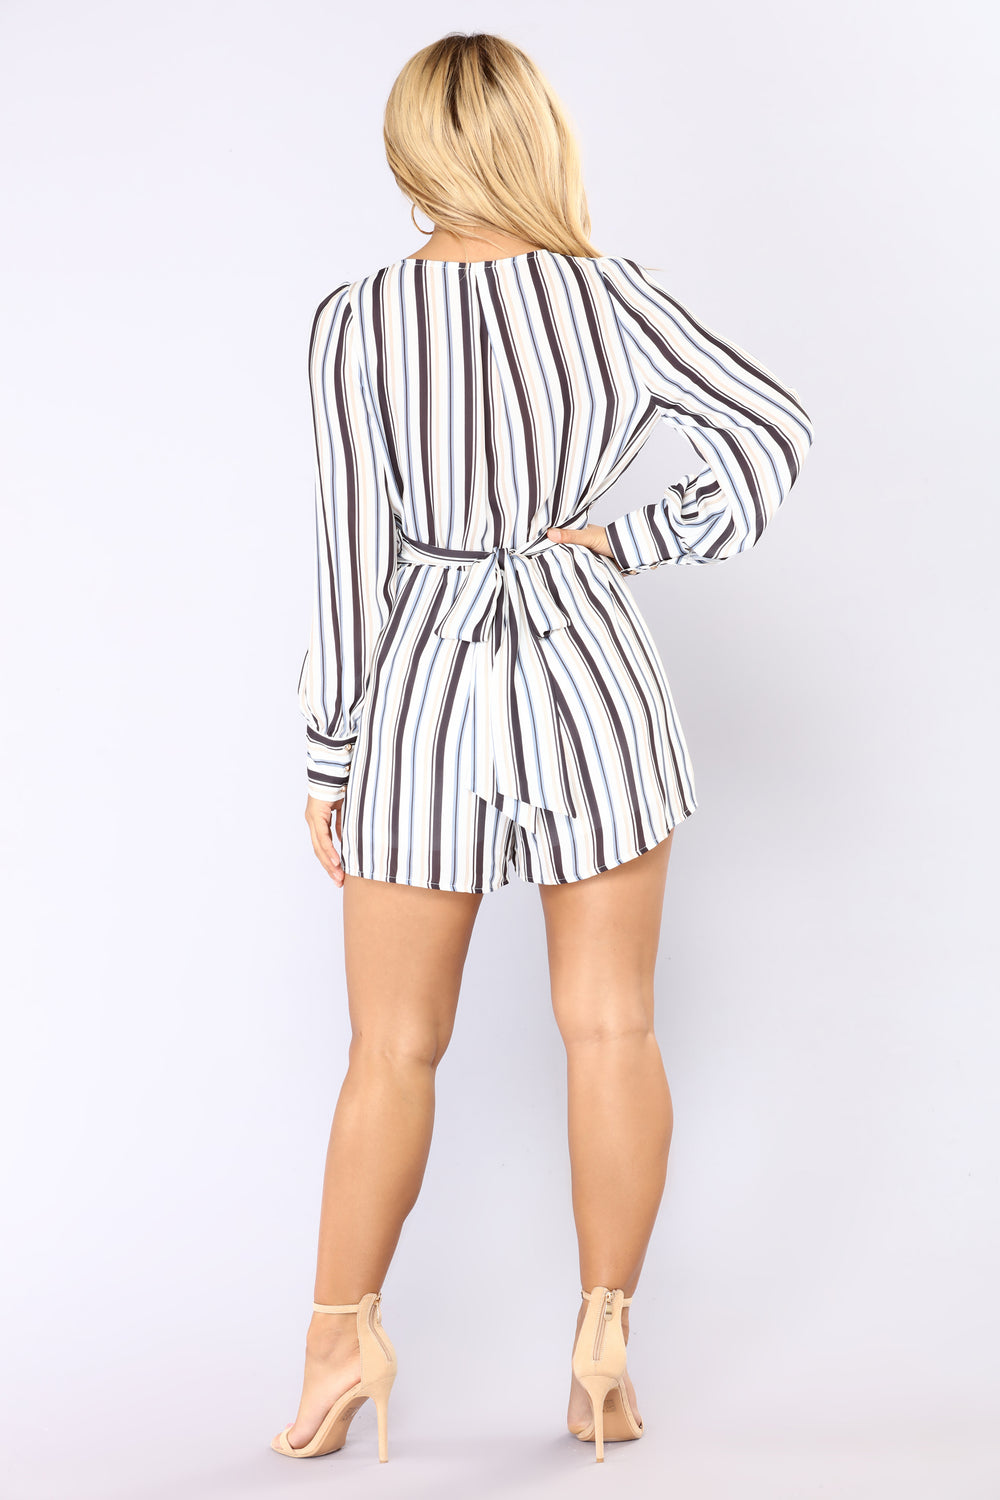 How The World Works Stripe Romper - Ivory